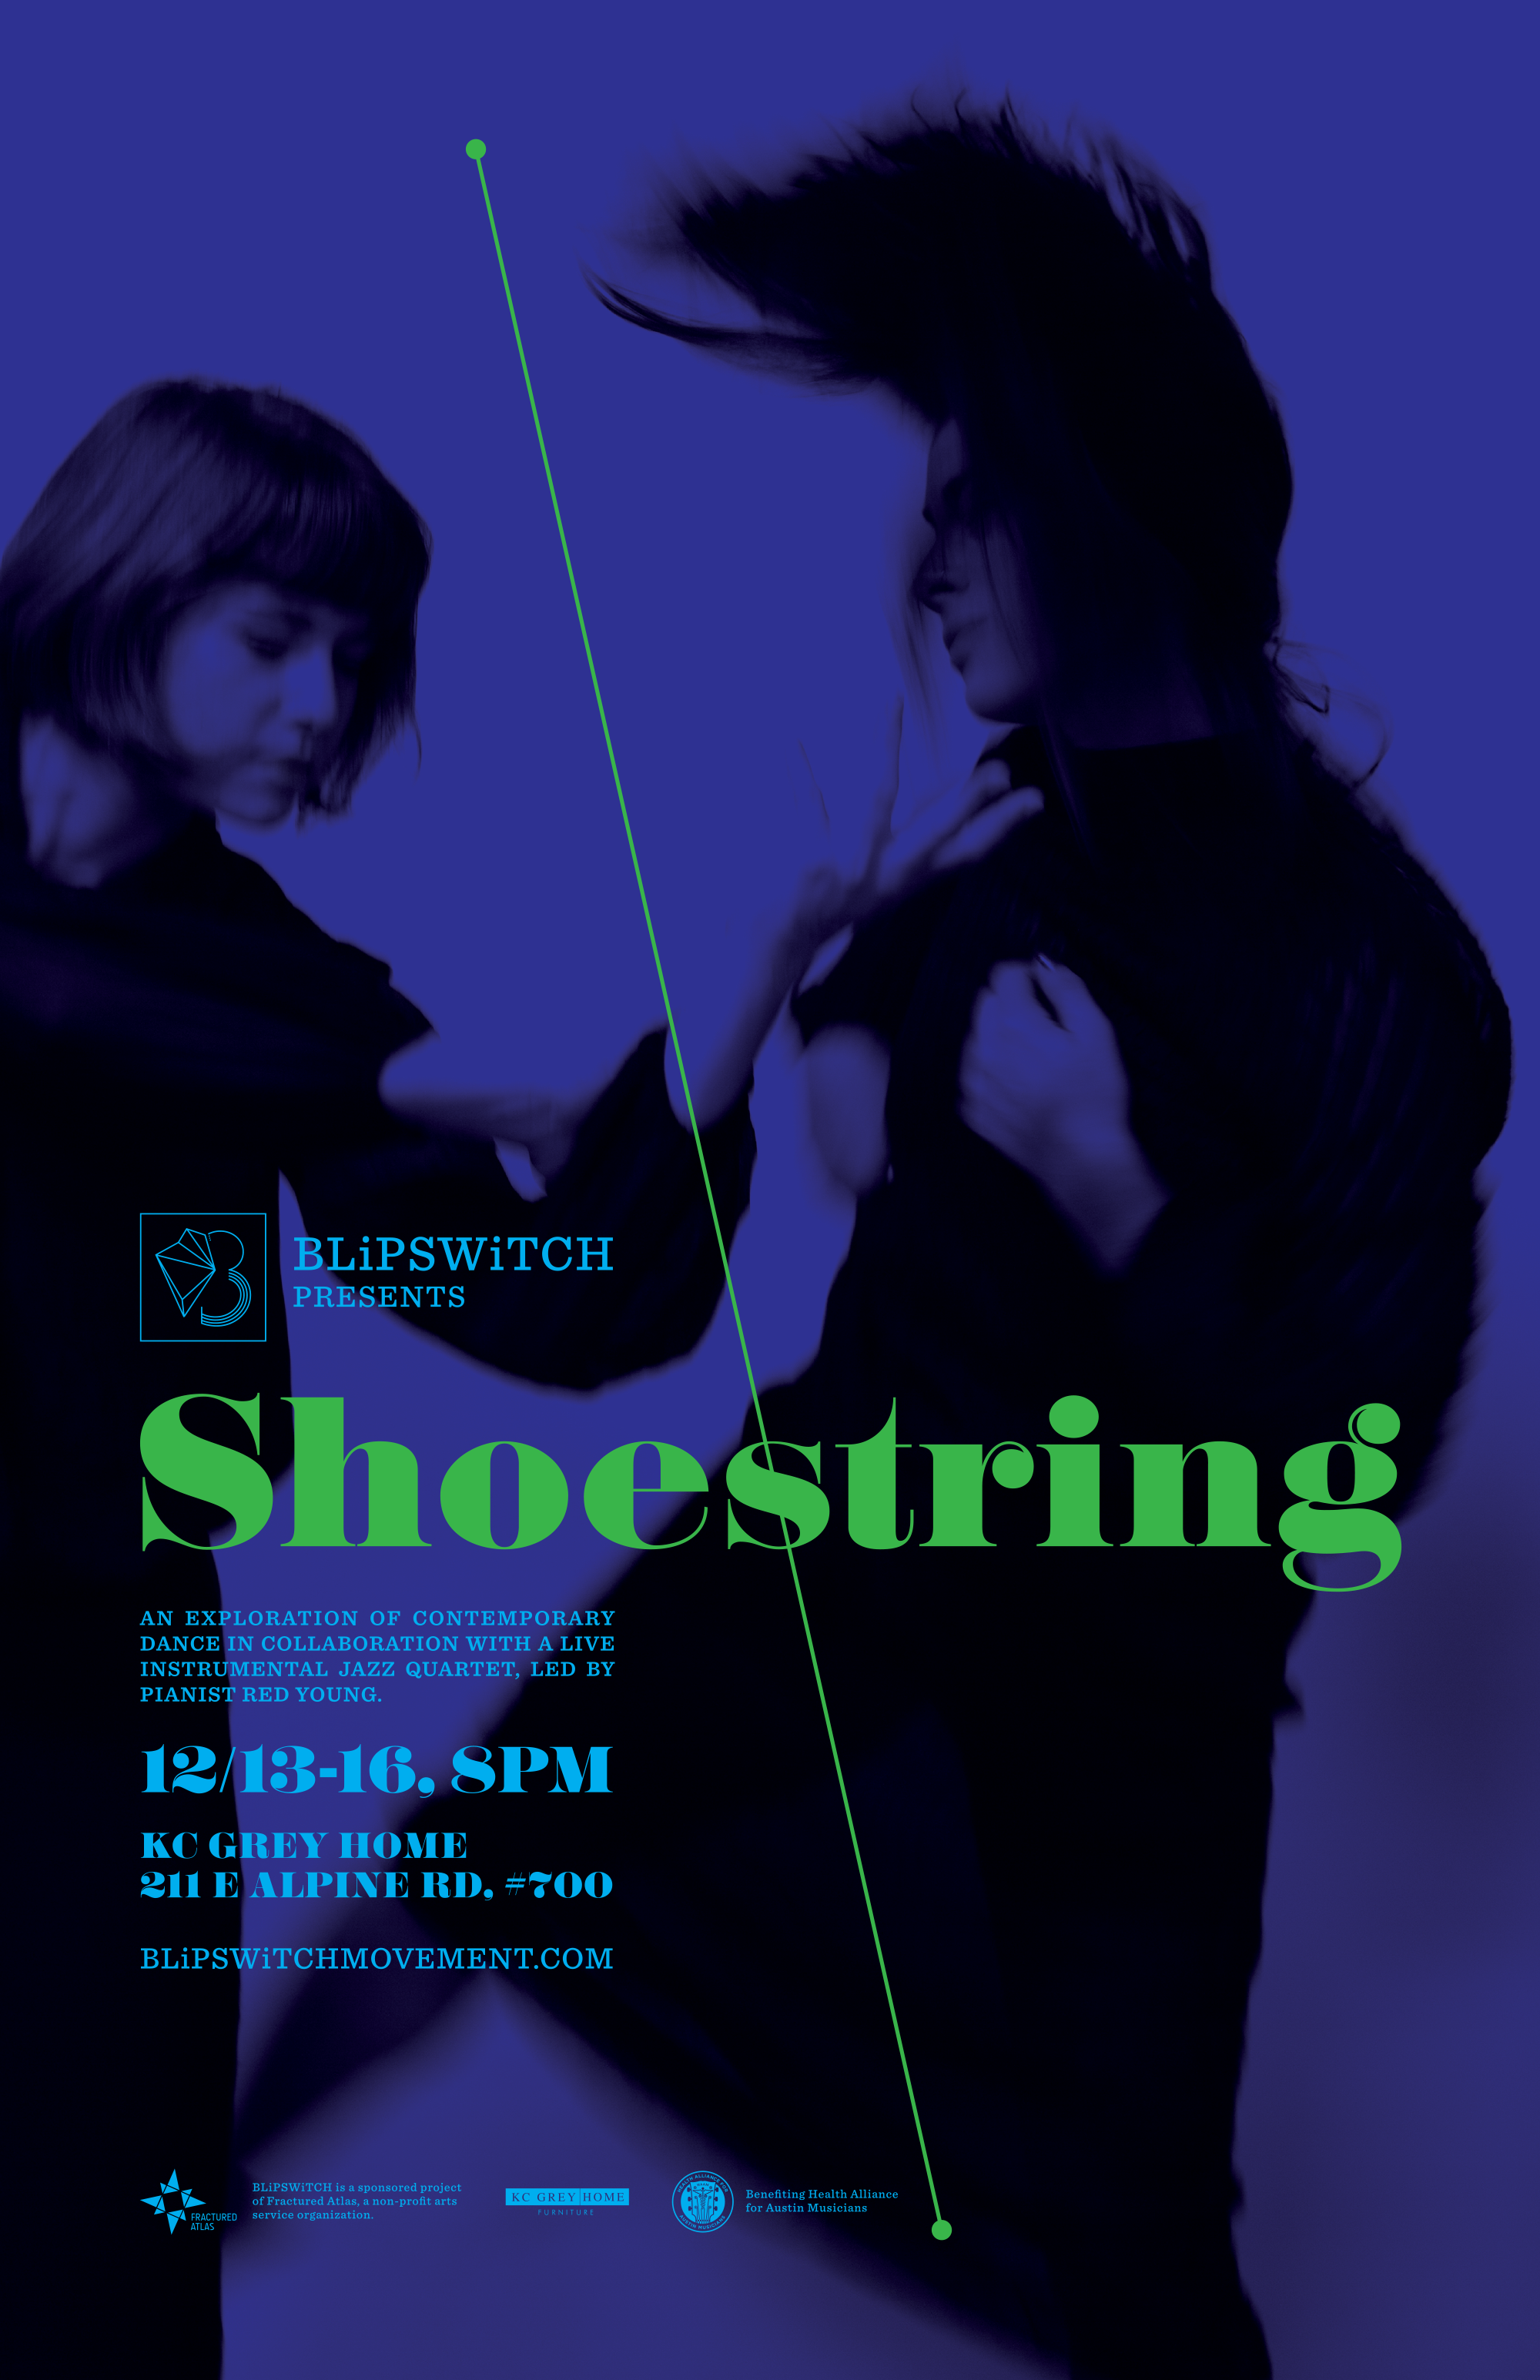 Shoestring - December 13-16, 2017KC Grey Home. Austin, TXShoestring brought contemporary dance together with a live instrumental jazz quartet, led by pianist Red Young. Each night featured new musicians alongside the seven dancers. The choreography explored the complex textures of the jazz genre, while leaving moments to expand into improvisation for in-the-moment conversations between the dancers and musicians.A portion of all ticket sales supported HAAM— Health Alliance for Austin Musicians.